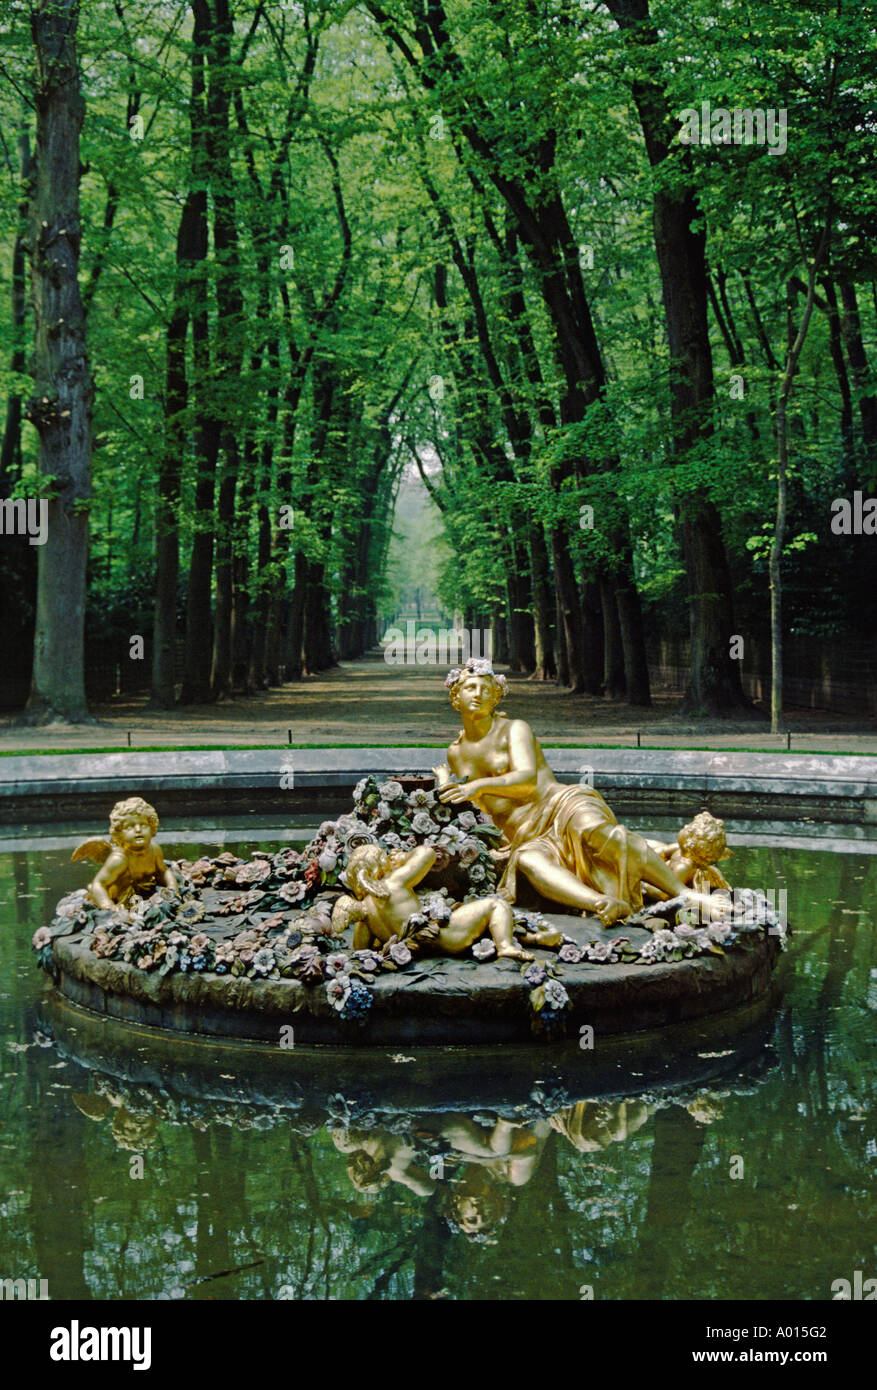 FOUNTAIN with GILDED STATUES in GARDENS of VERSAILLES PALACE